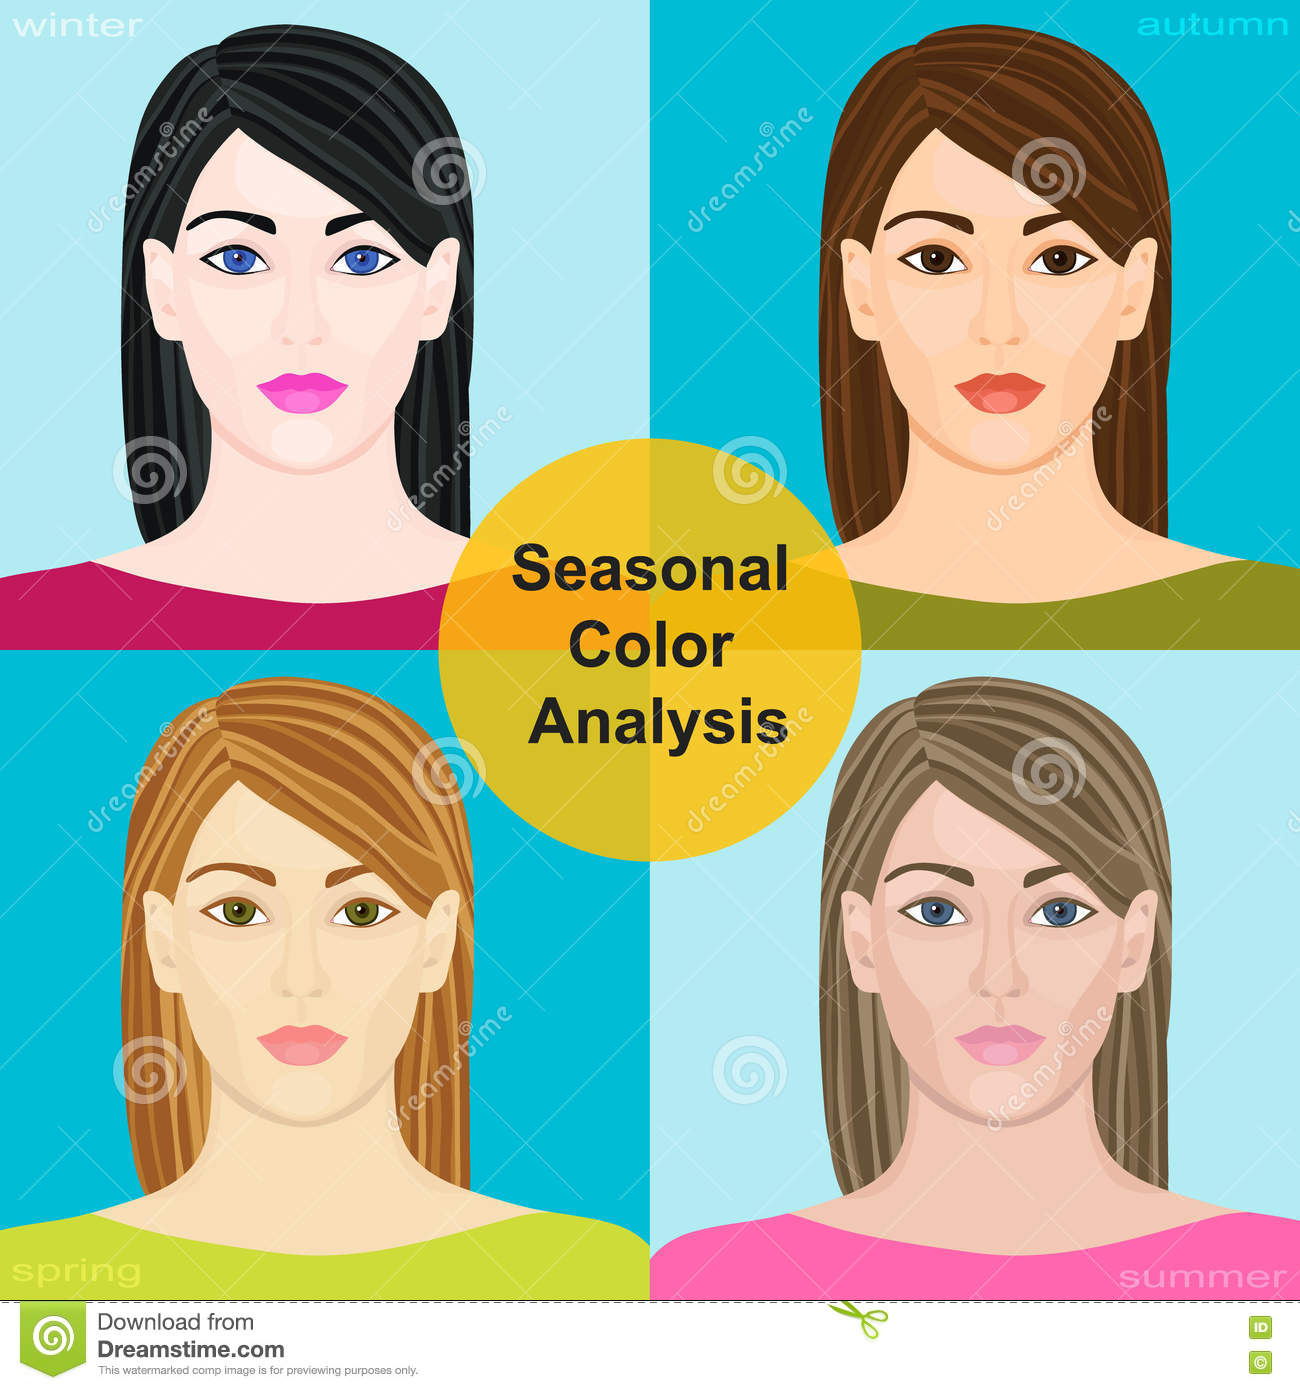 an analysis of the greatest season in summer Amazoncom: color me a season: a complete guide to finding your best colors   color revival: understanding the 12 season color analysis system  be one) ,and also according to msjackson, i have spring eyes,and summer hair,(and.